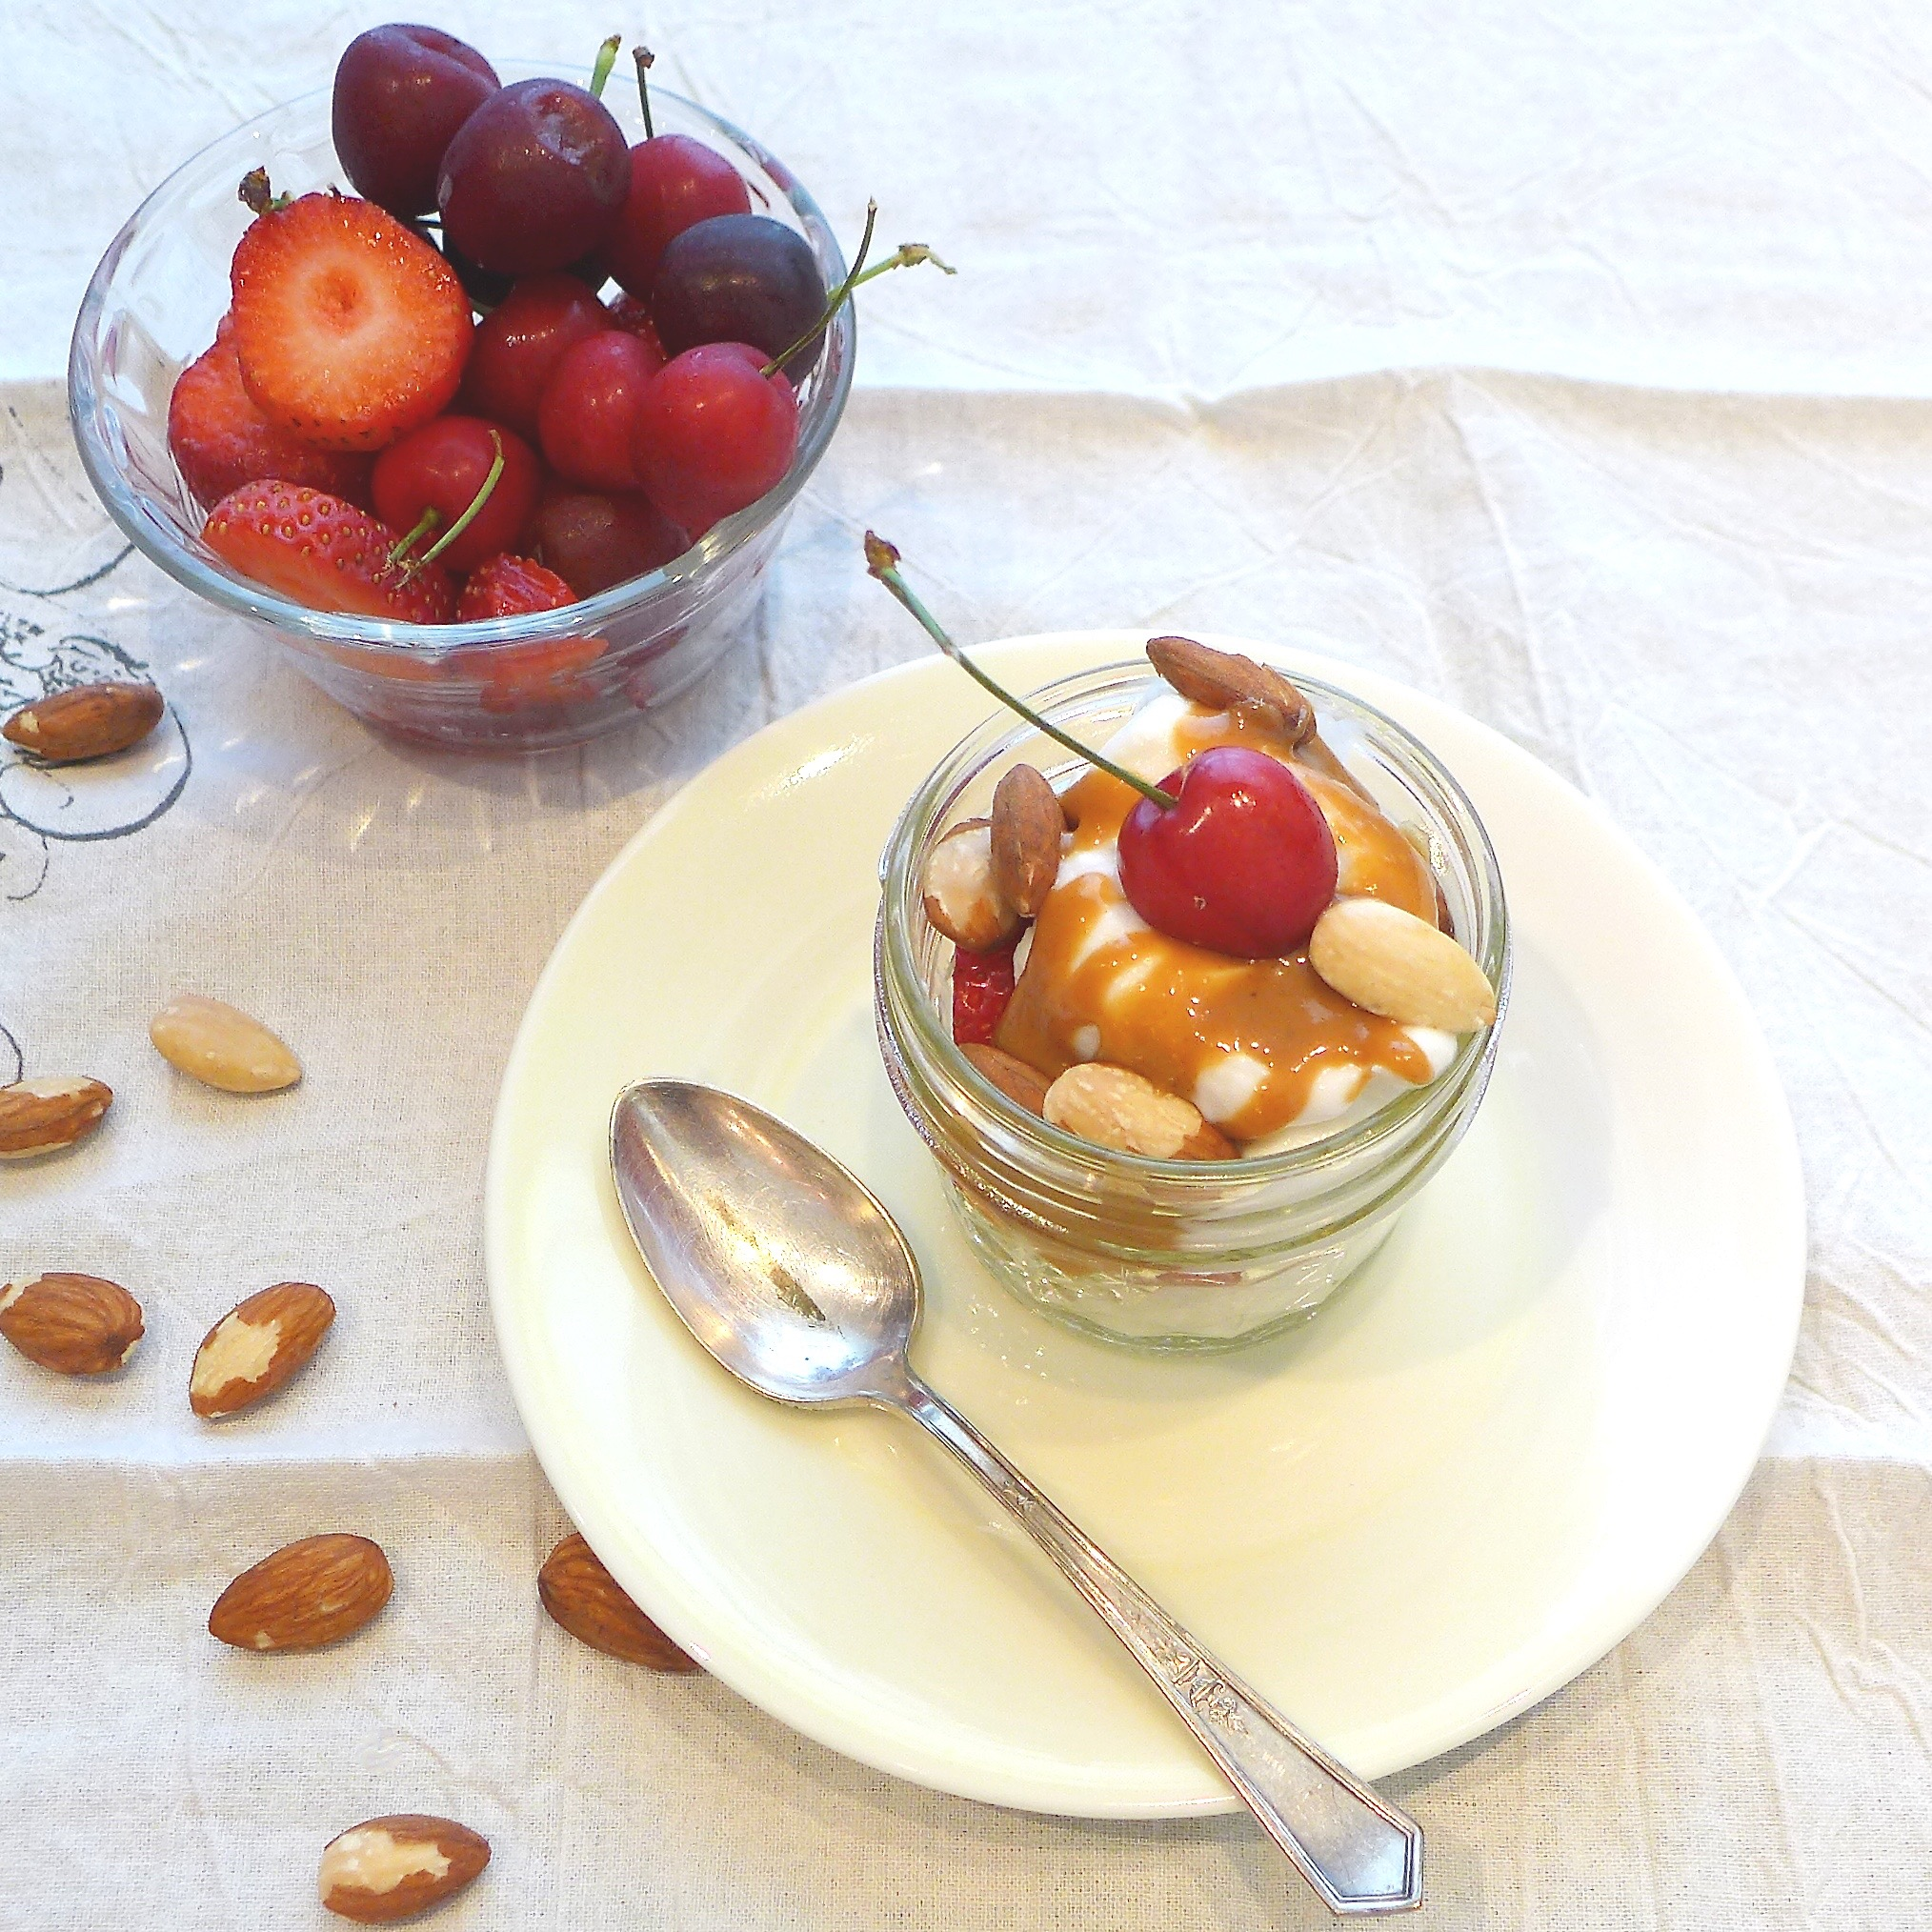 Fruit and Yogurt Parfait with nut butter drizzle and almonds